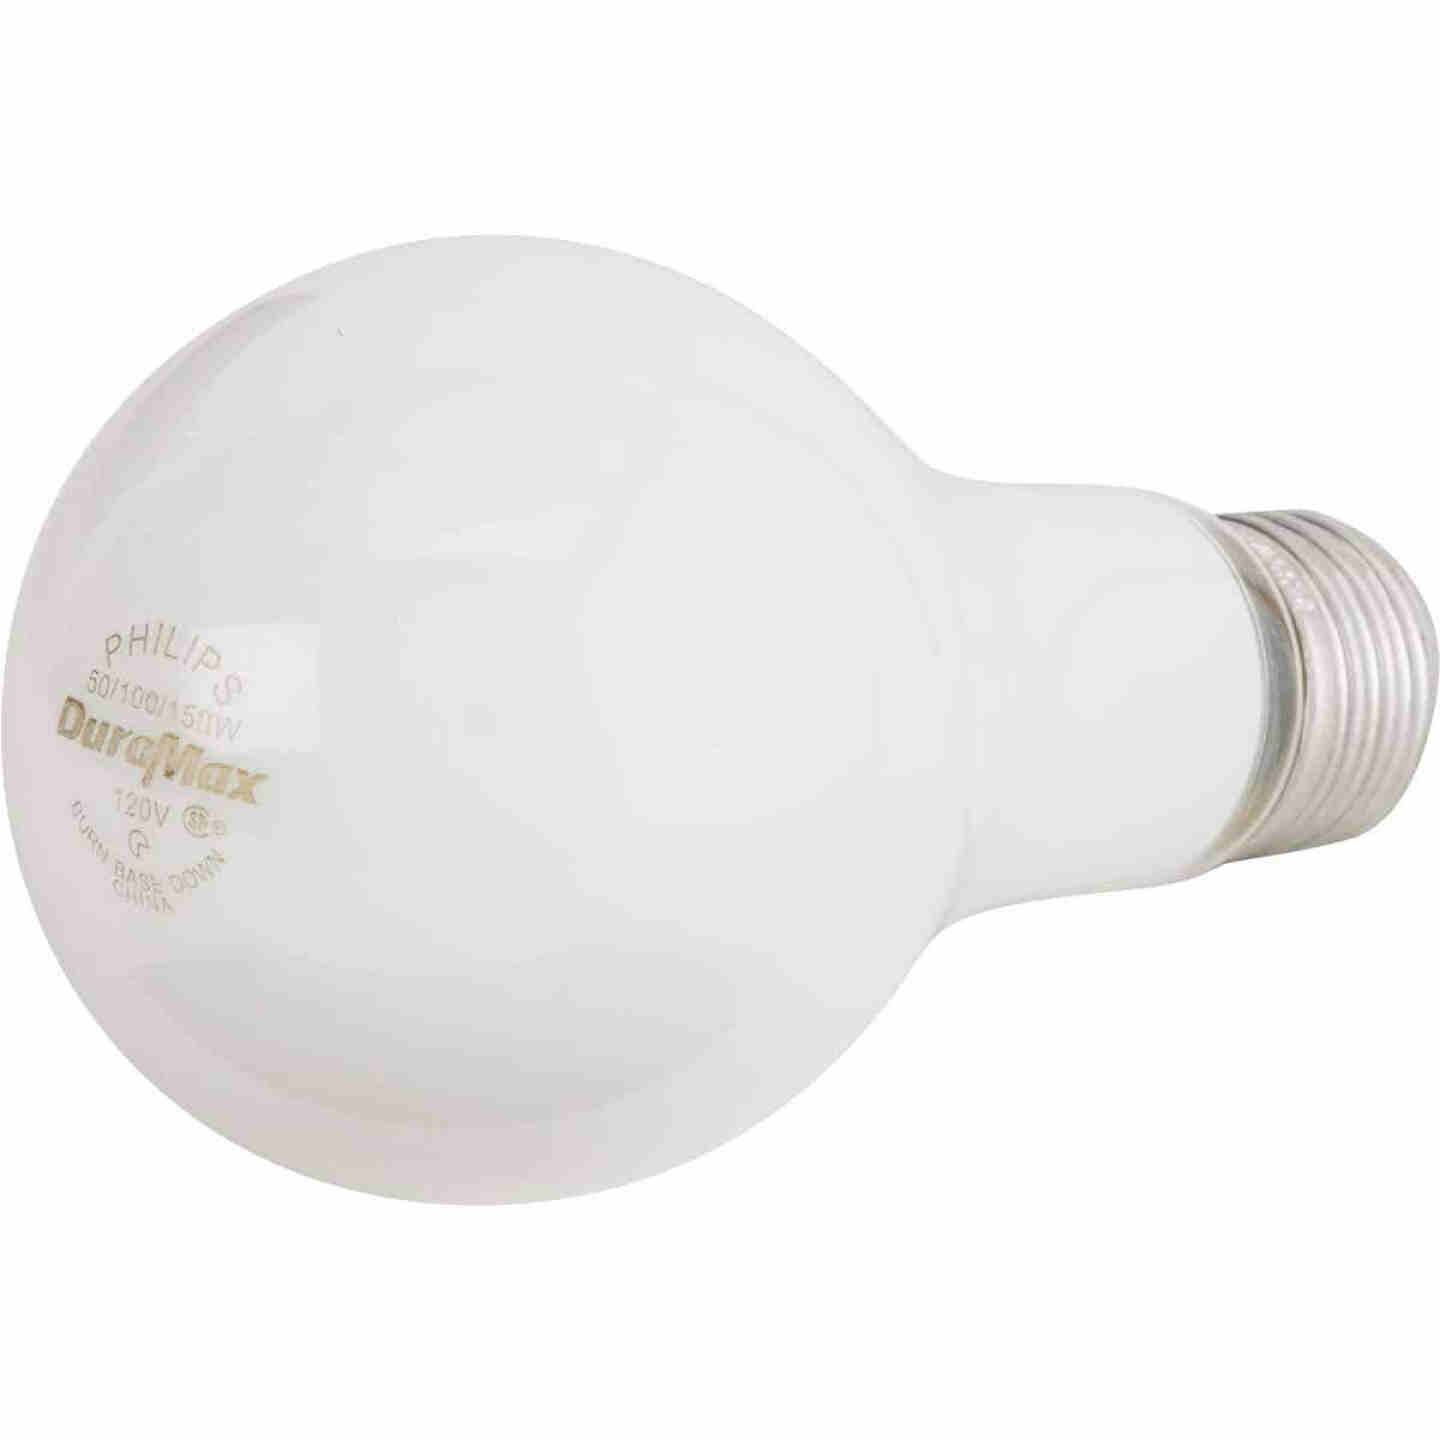 Philips Duramax 50/100/150W Frosted Soft White Medium Base A21 Incandescent 3-Way Light Bulb Image 3